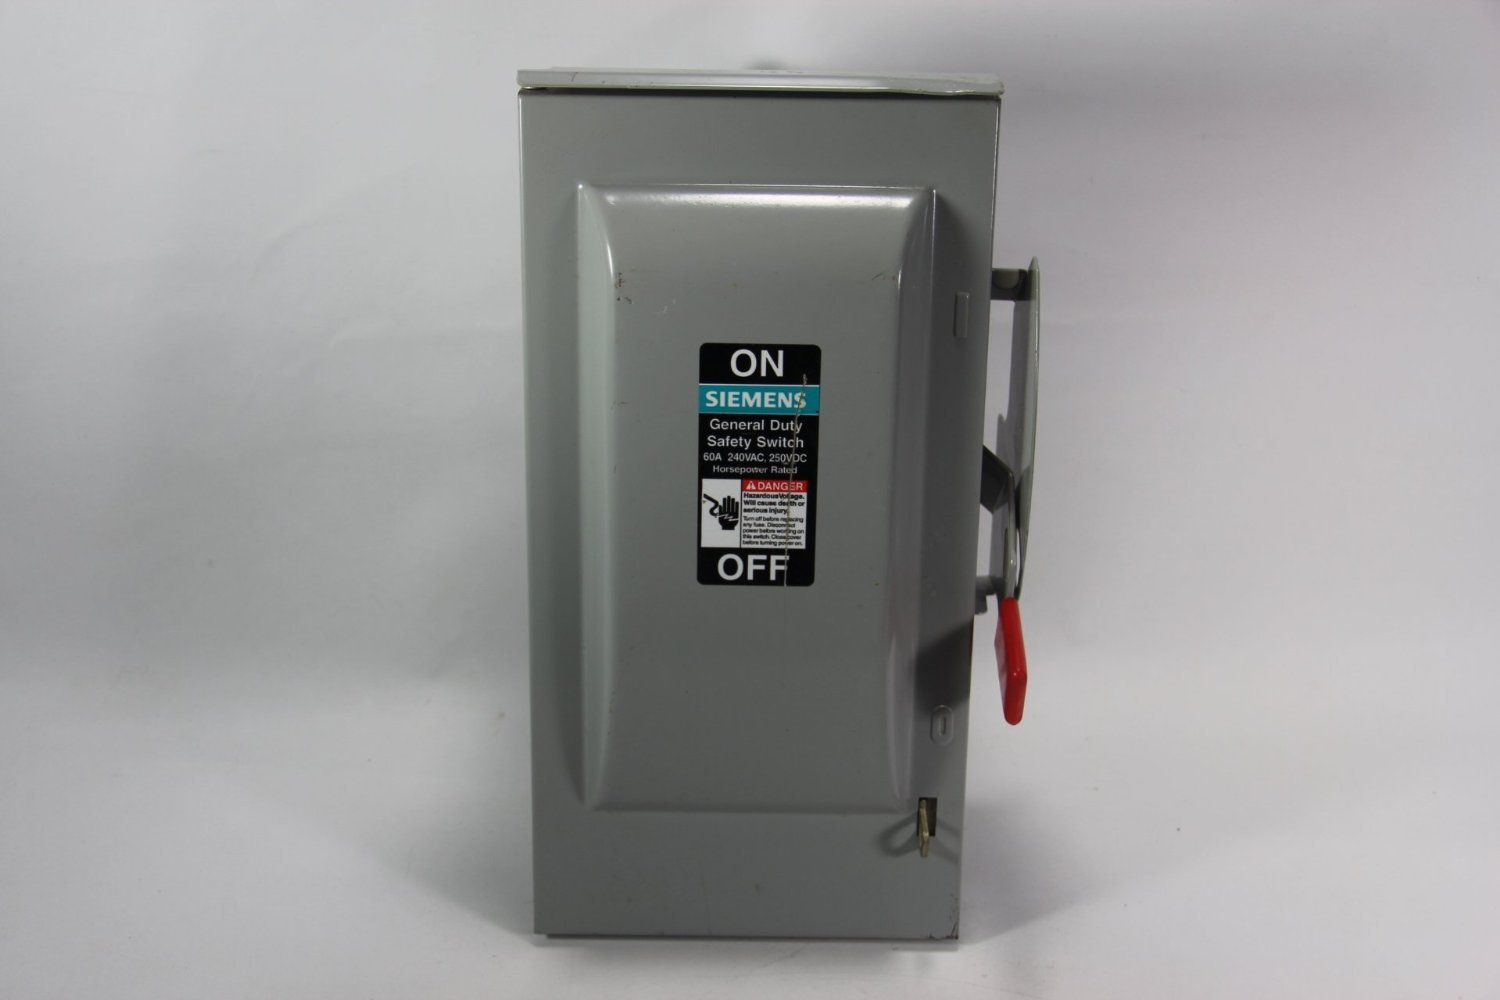 Siemens 240 Volt 3-Pole 4- Wire NON-FUSIBLE Safety Switches/Disconnects Outdoor General Duty 30 Amp, 60 Amp, 100 Amp, 200 Amp